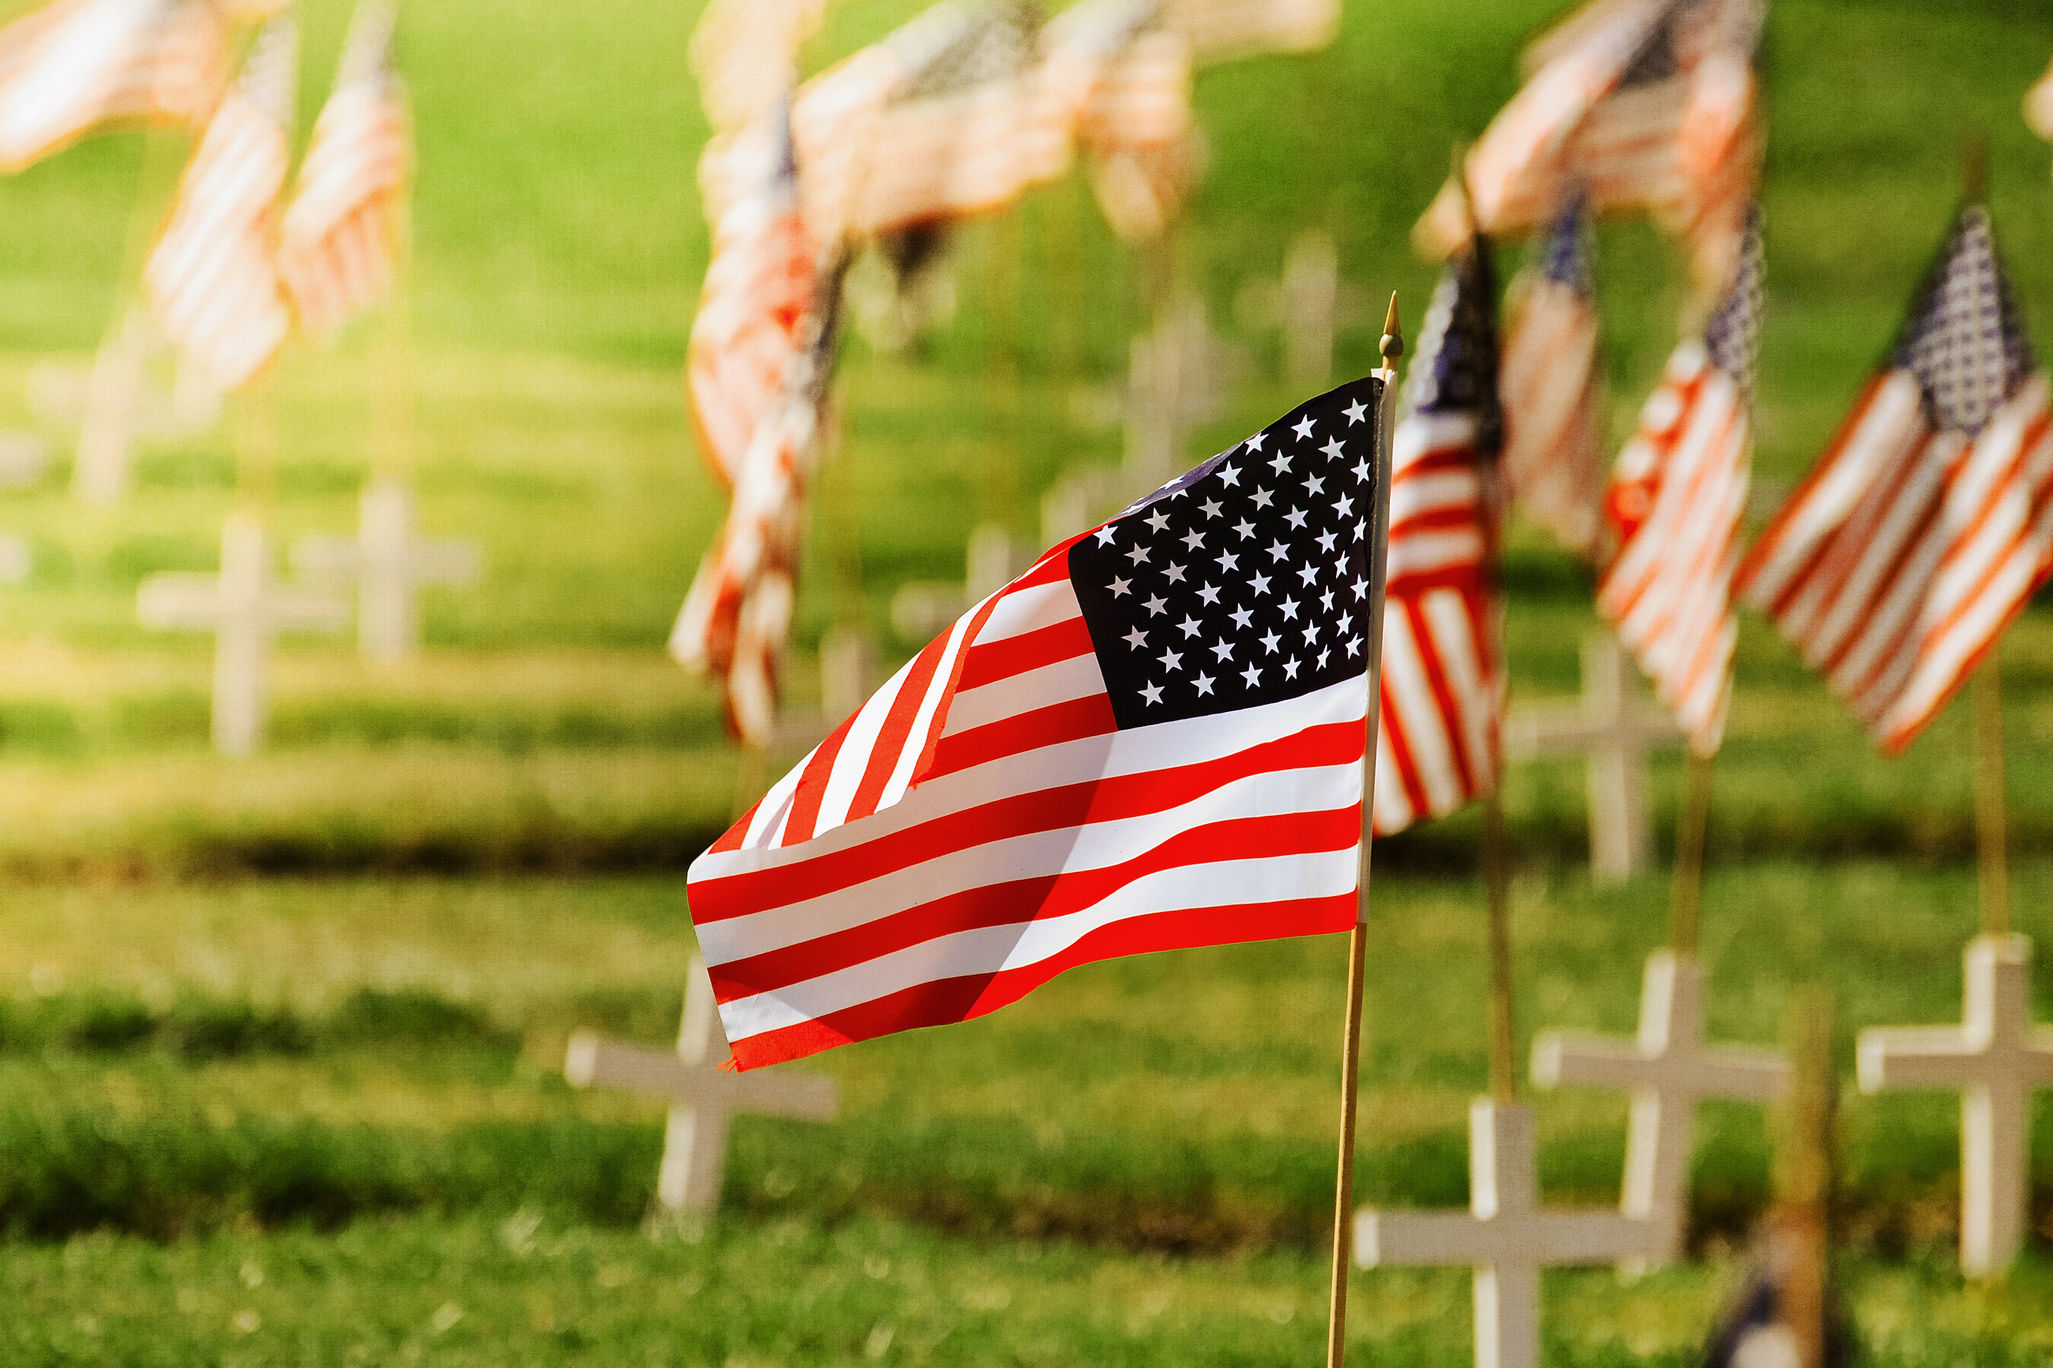 32 Memorial Day Quotes to Honor America's Fallen Soldiers